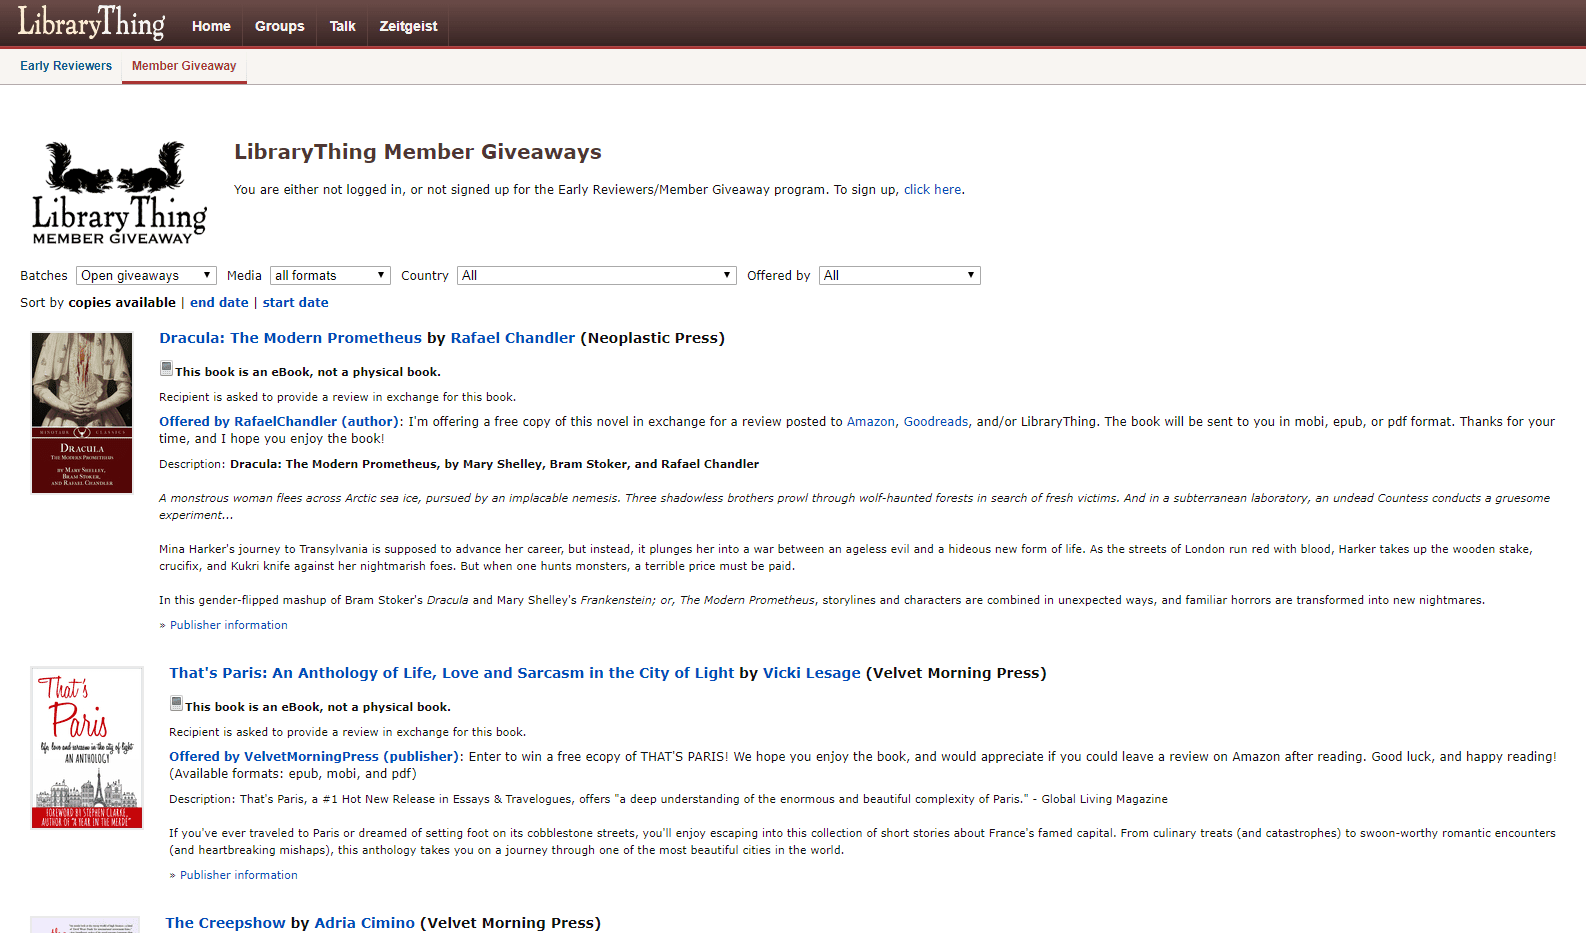 Image of a Giveaway Page at LibraryThing